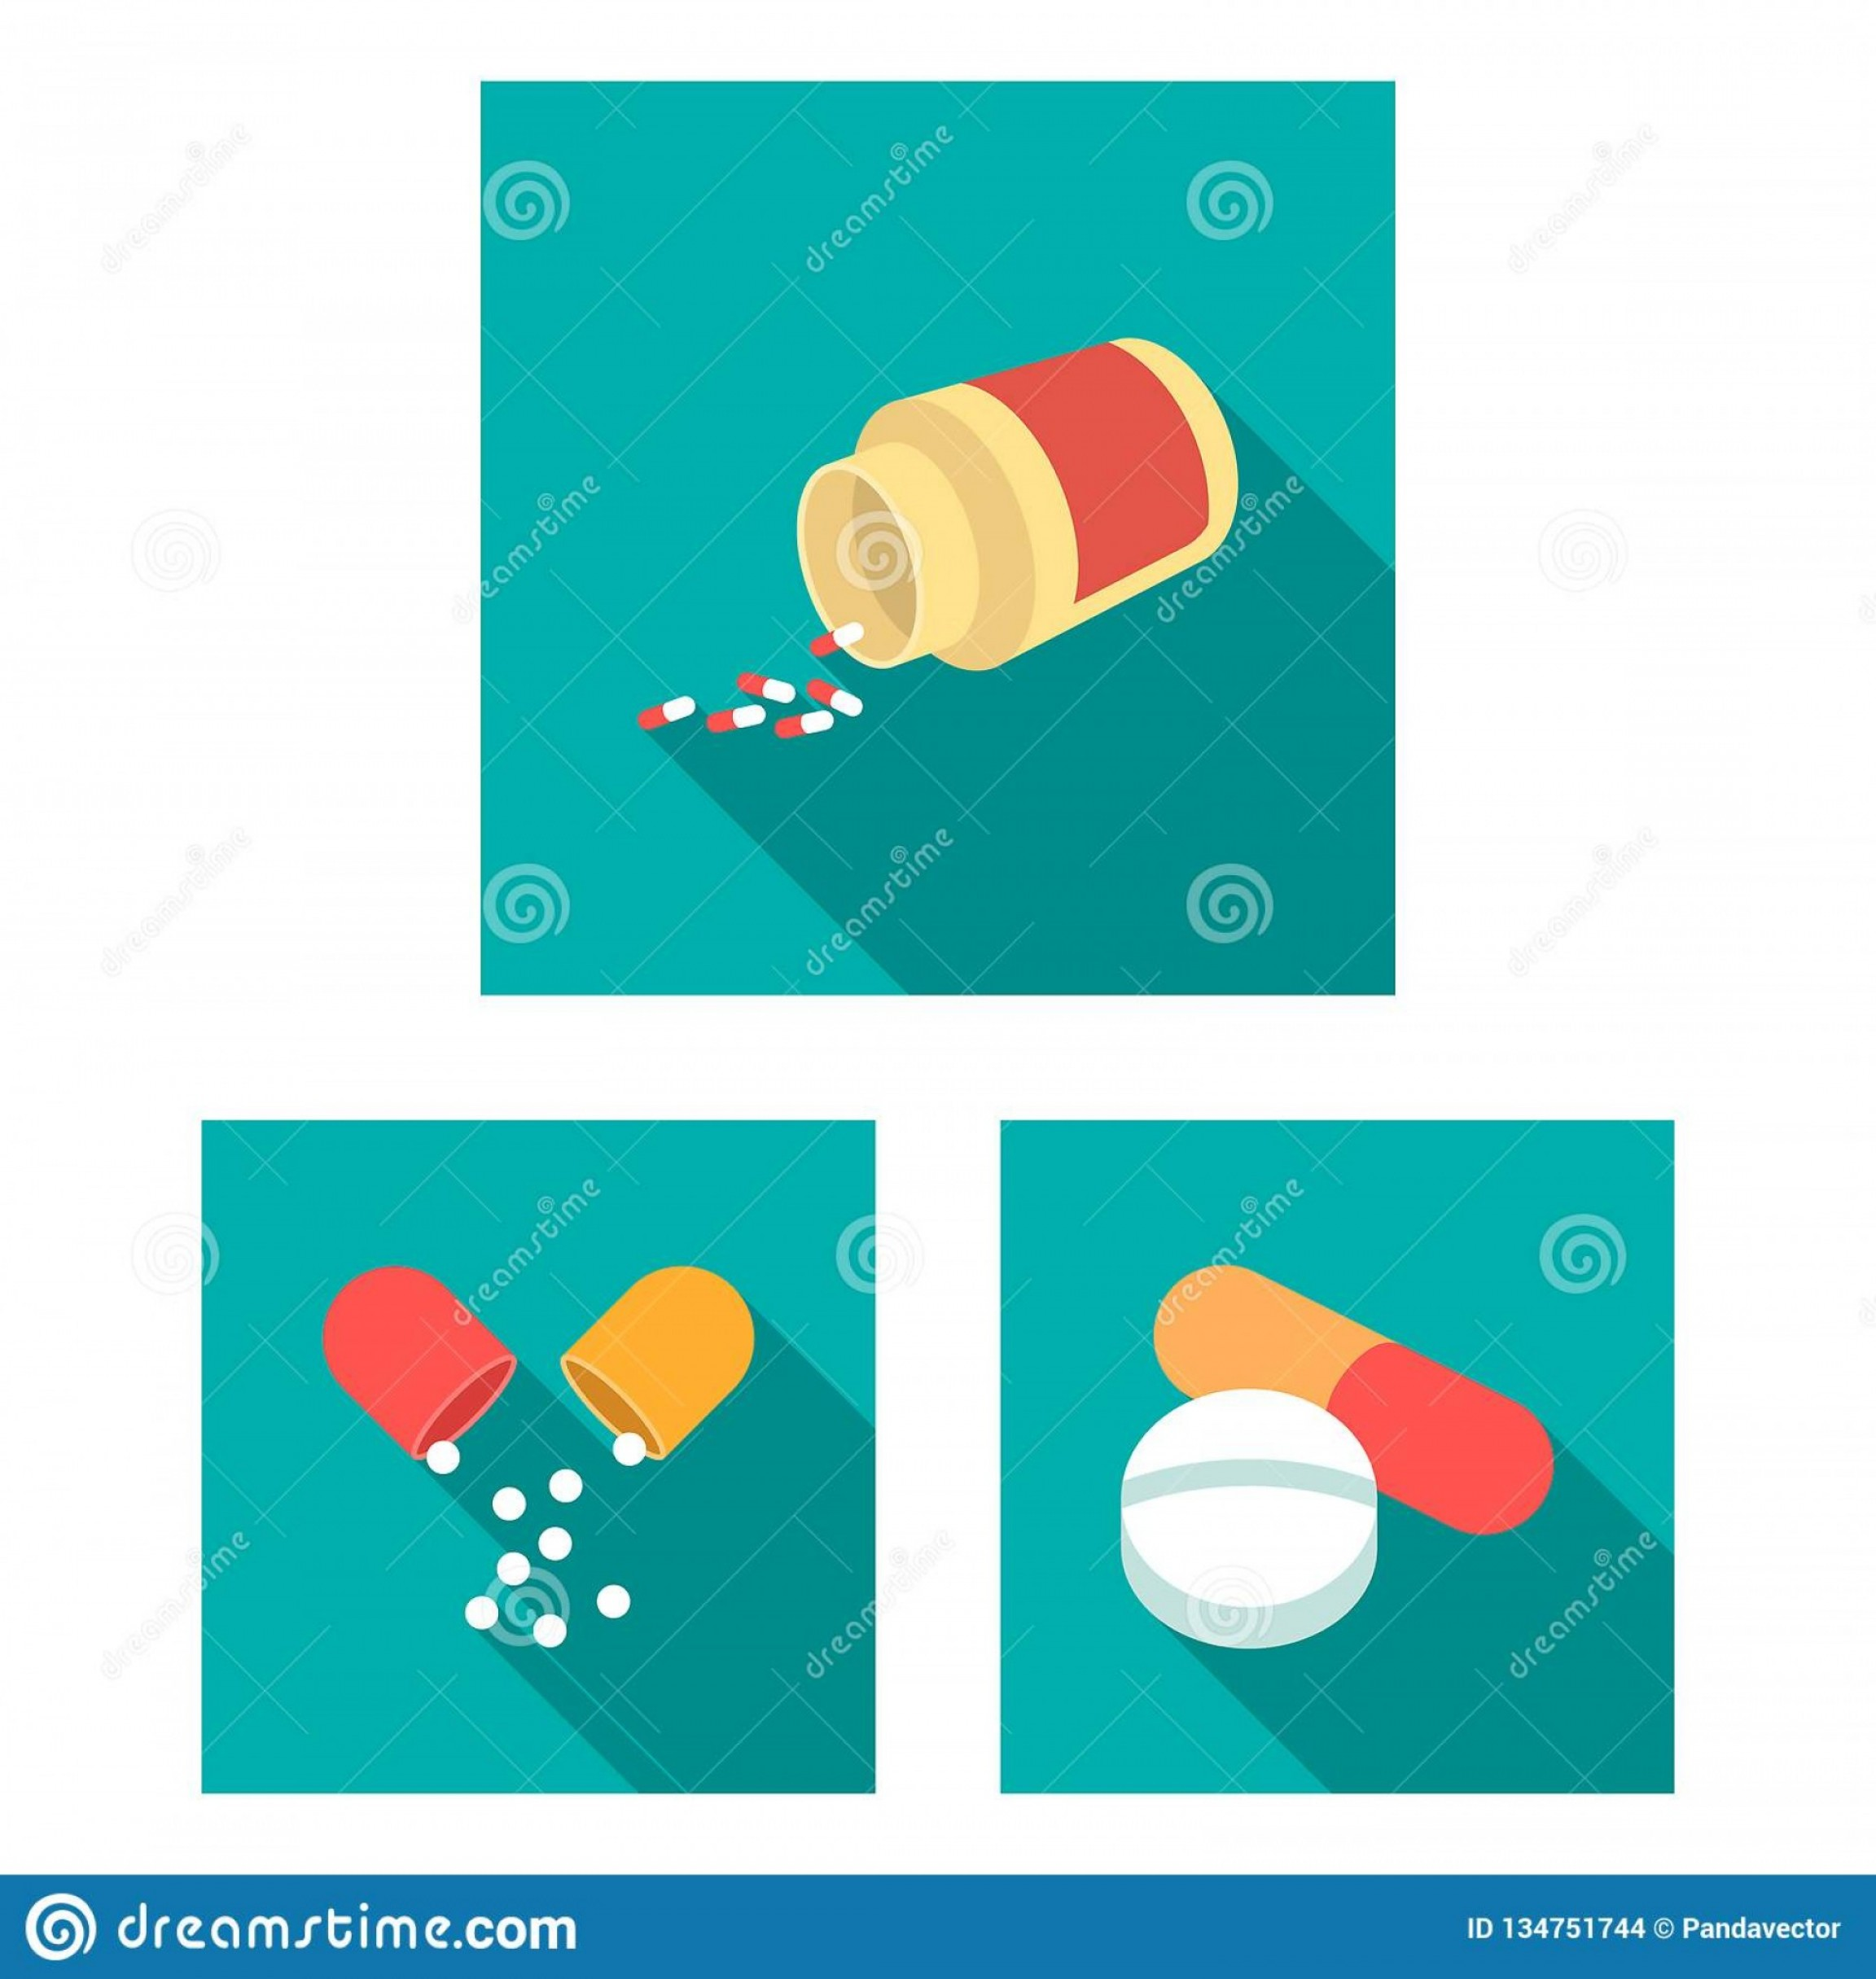 In Icon Stock Vector: Vector Illustration Pill Medicine Symbol Collection Pill Vitamin Vector Icon Stock Vector Design Pill Image